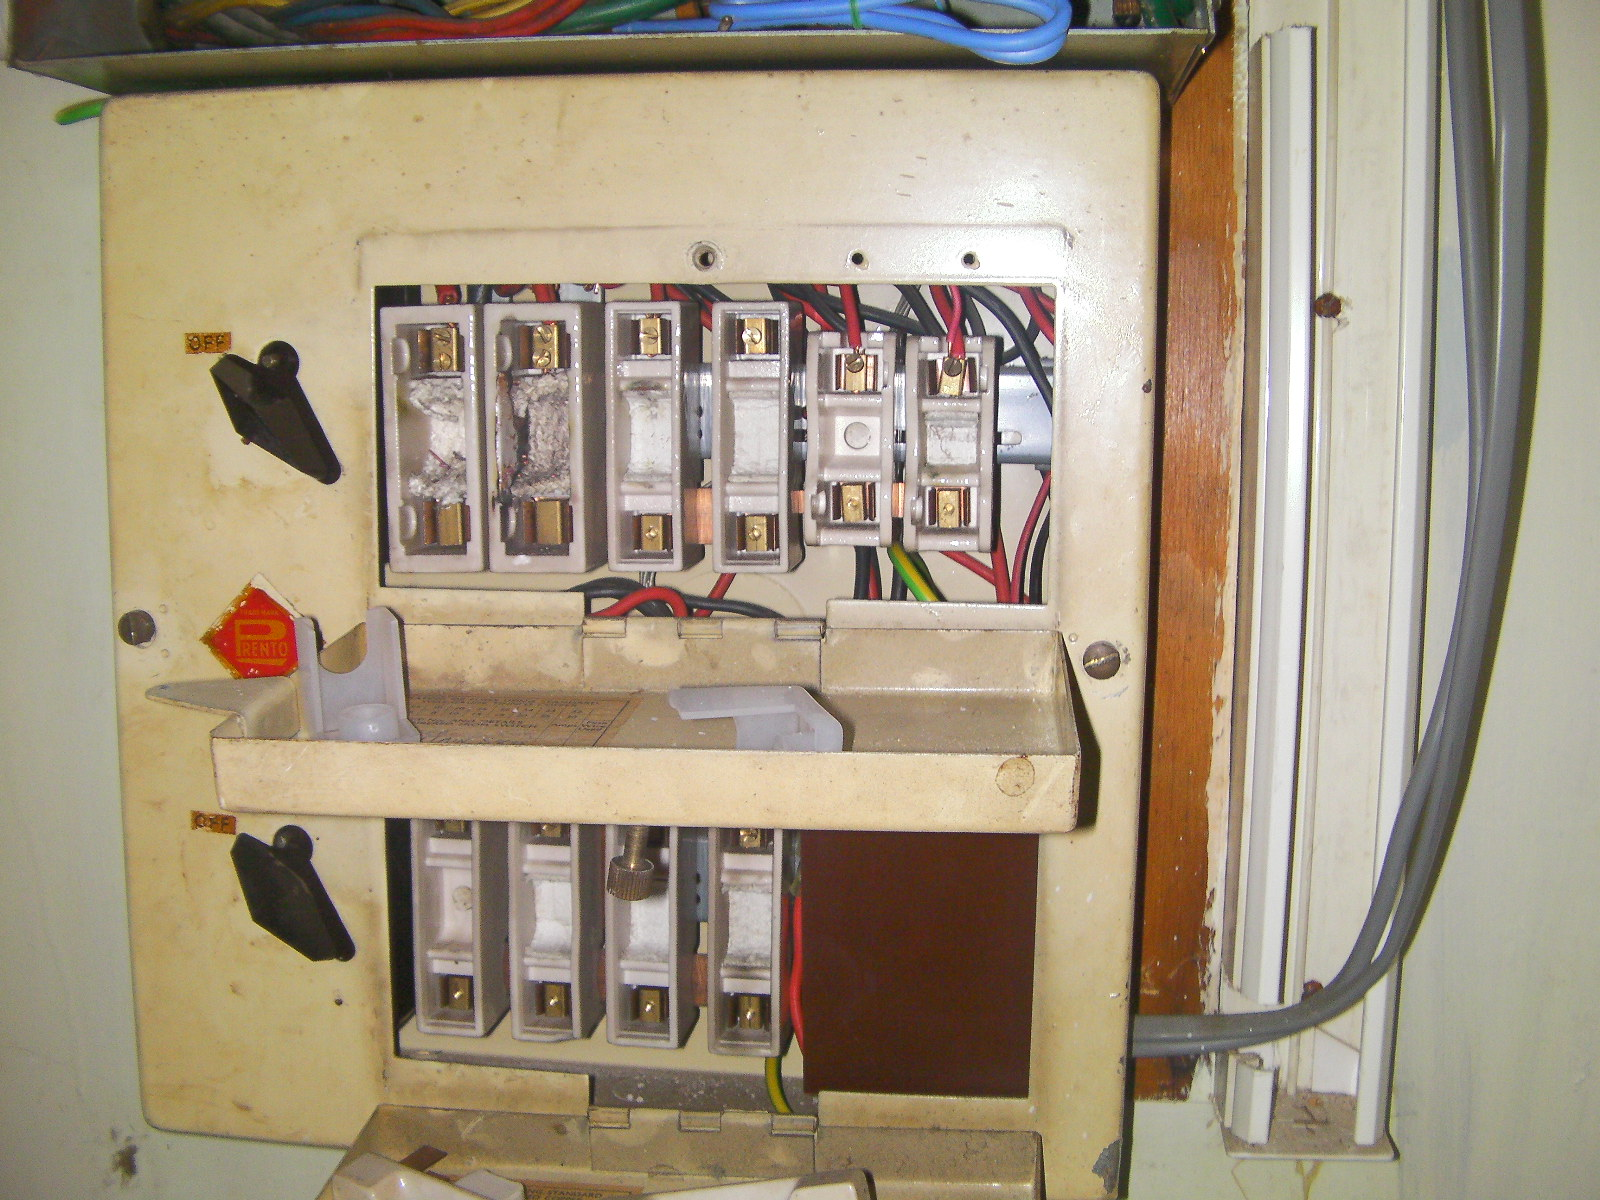 asbestos-containing-fuse-box-rope-flash-pads